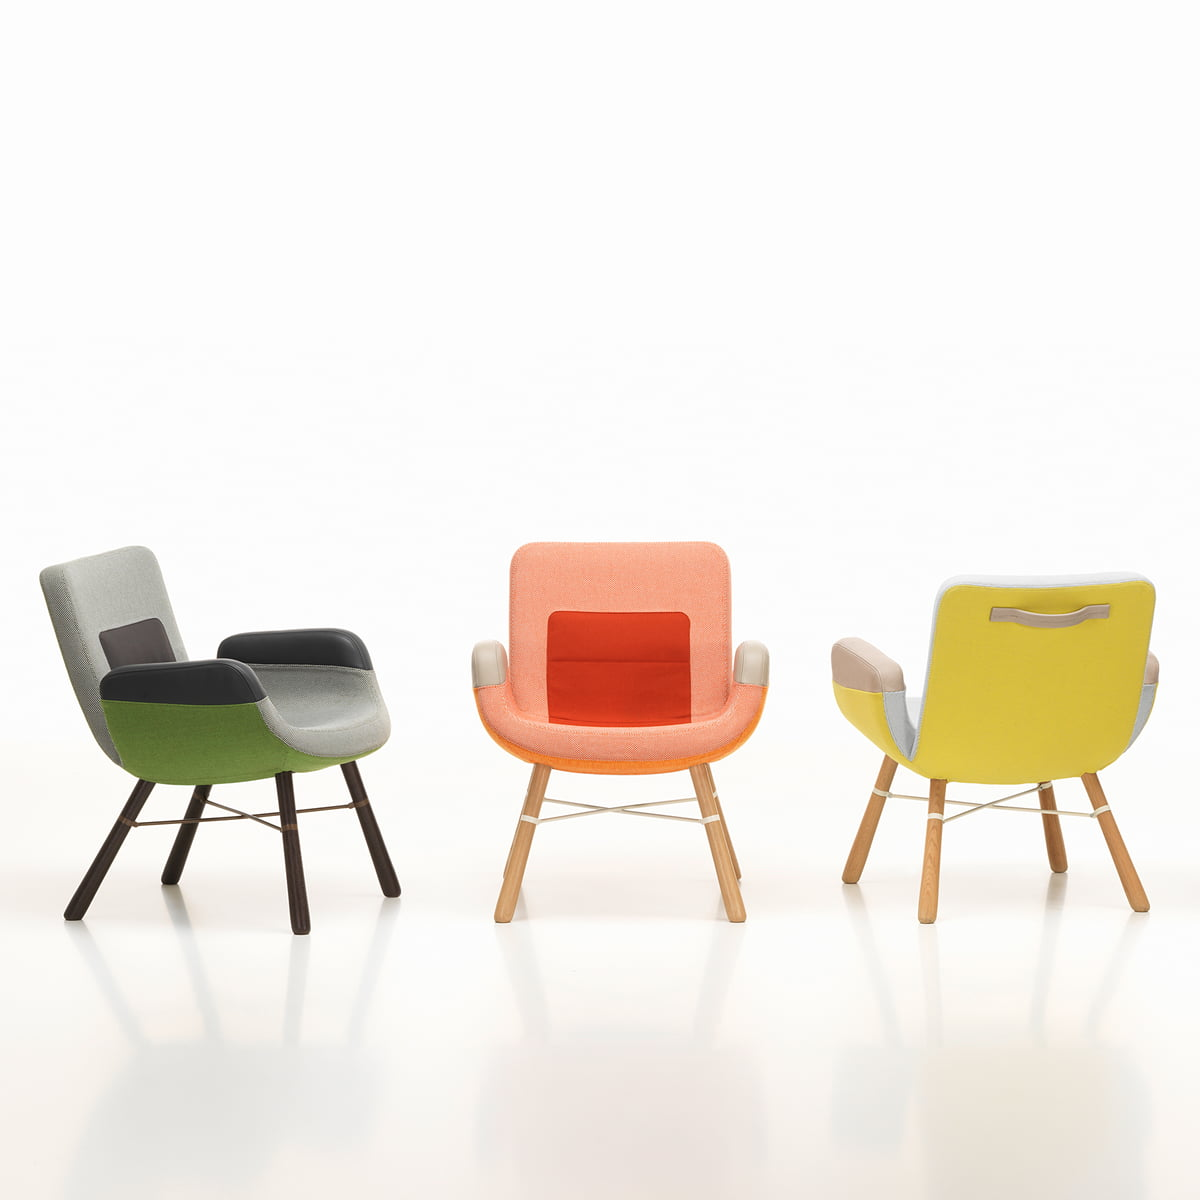 The East River Chair from Vitra in the shop